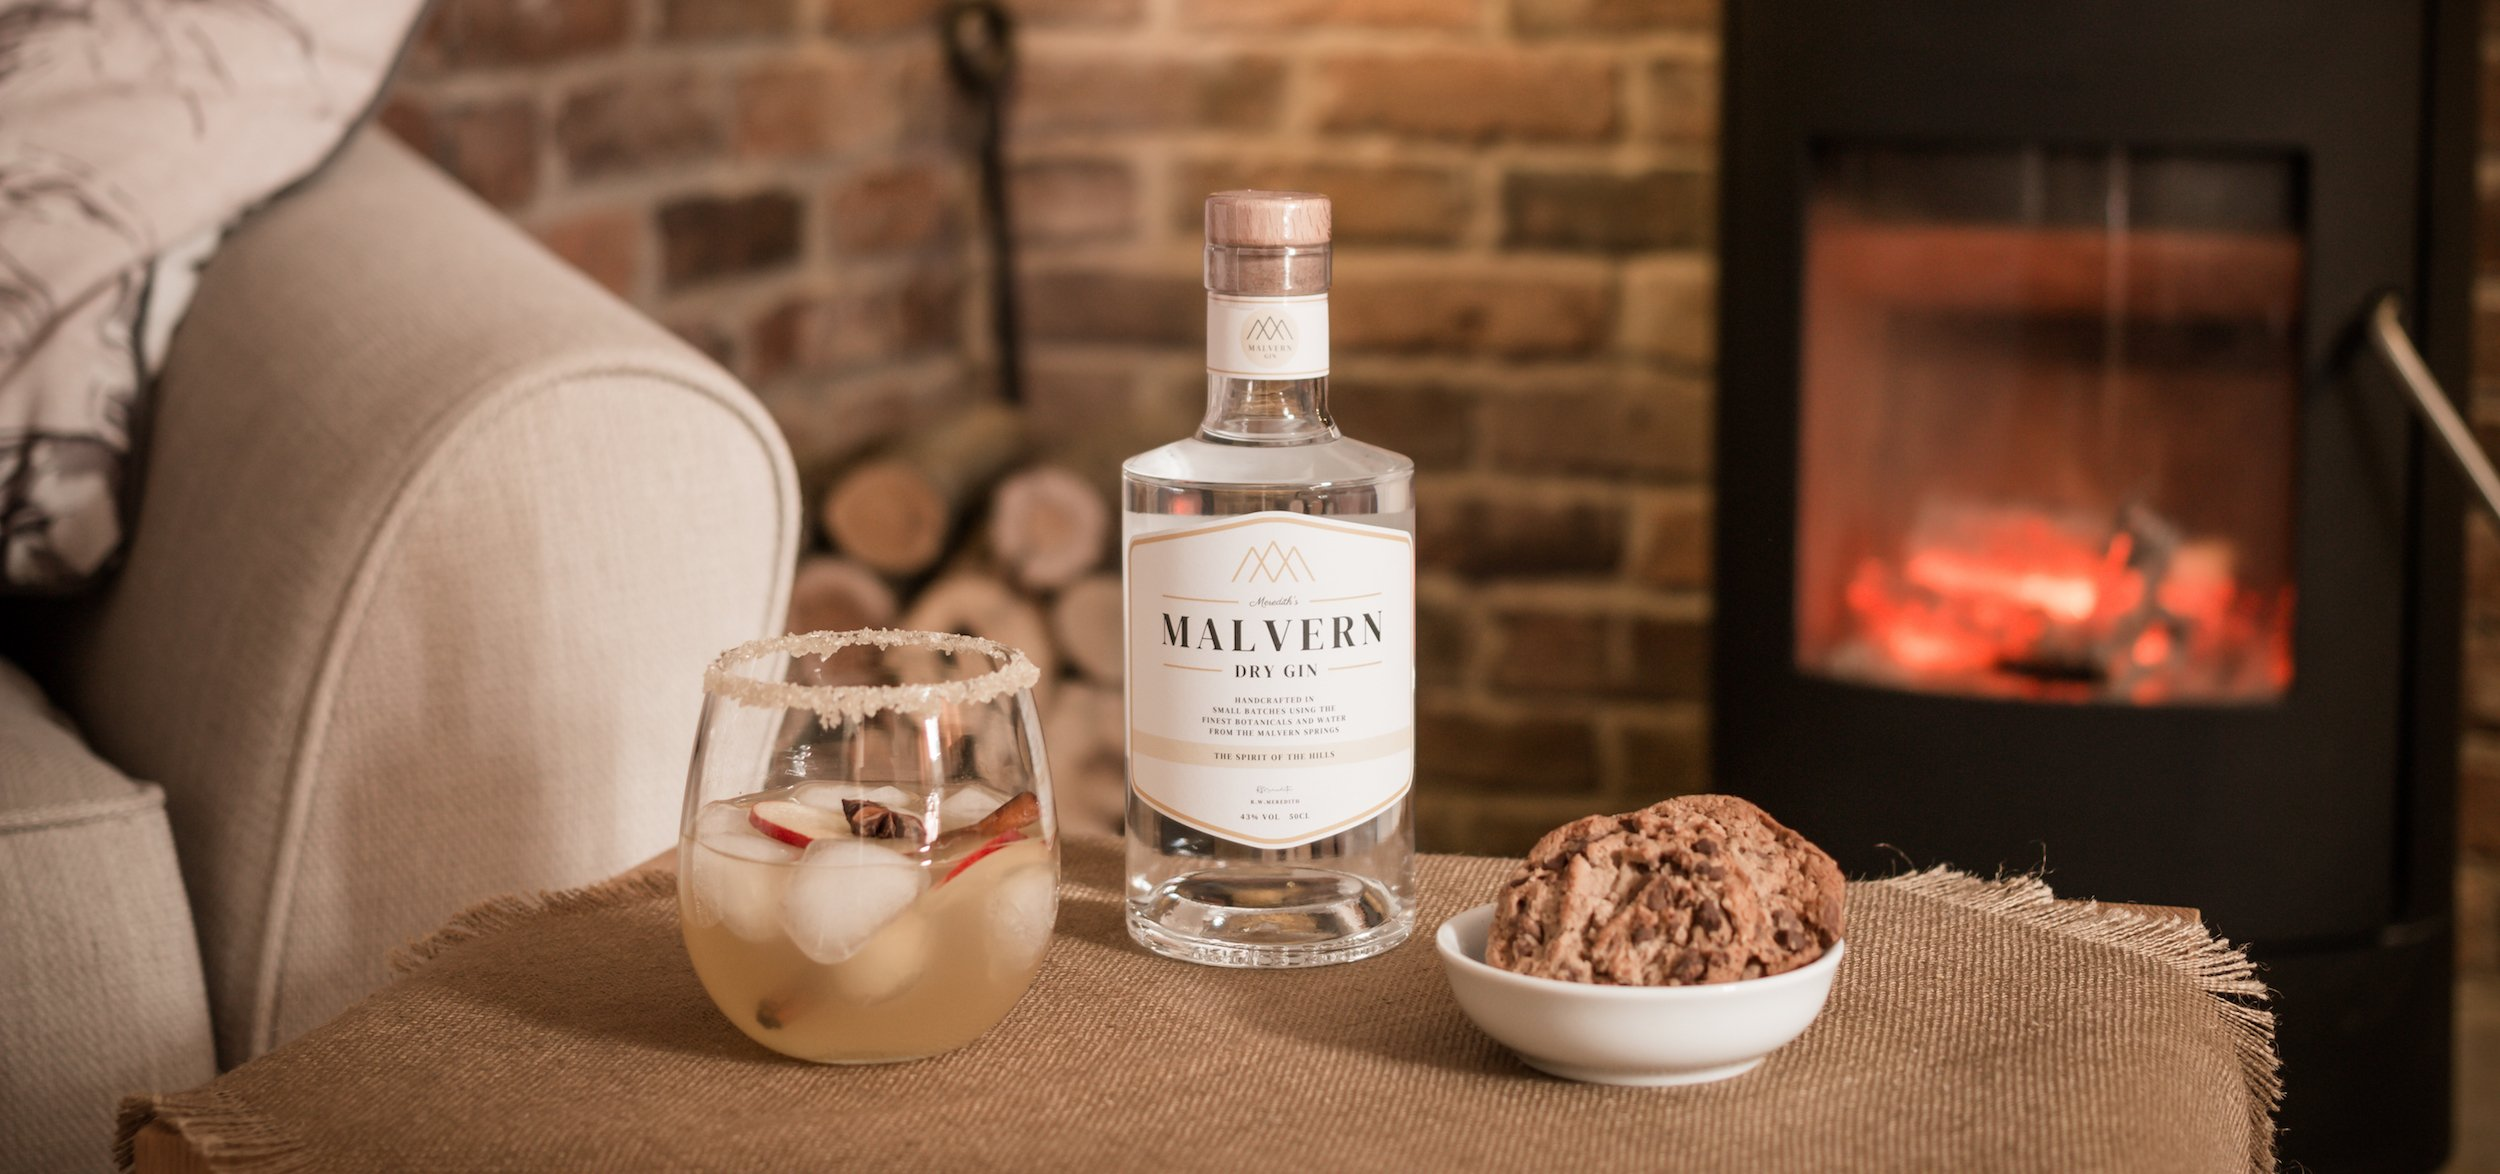 Malvern Dry Gin Spiced Gin Cocktail Panoramic